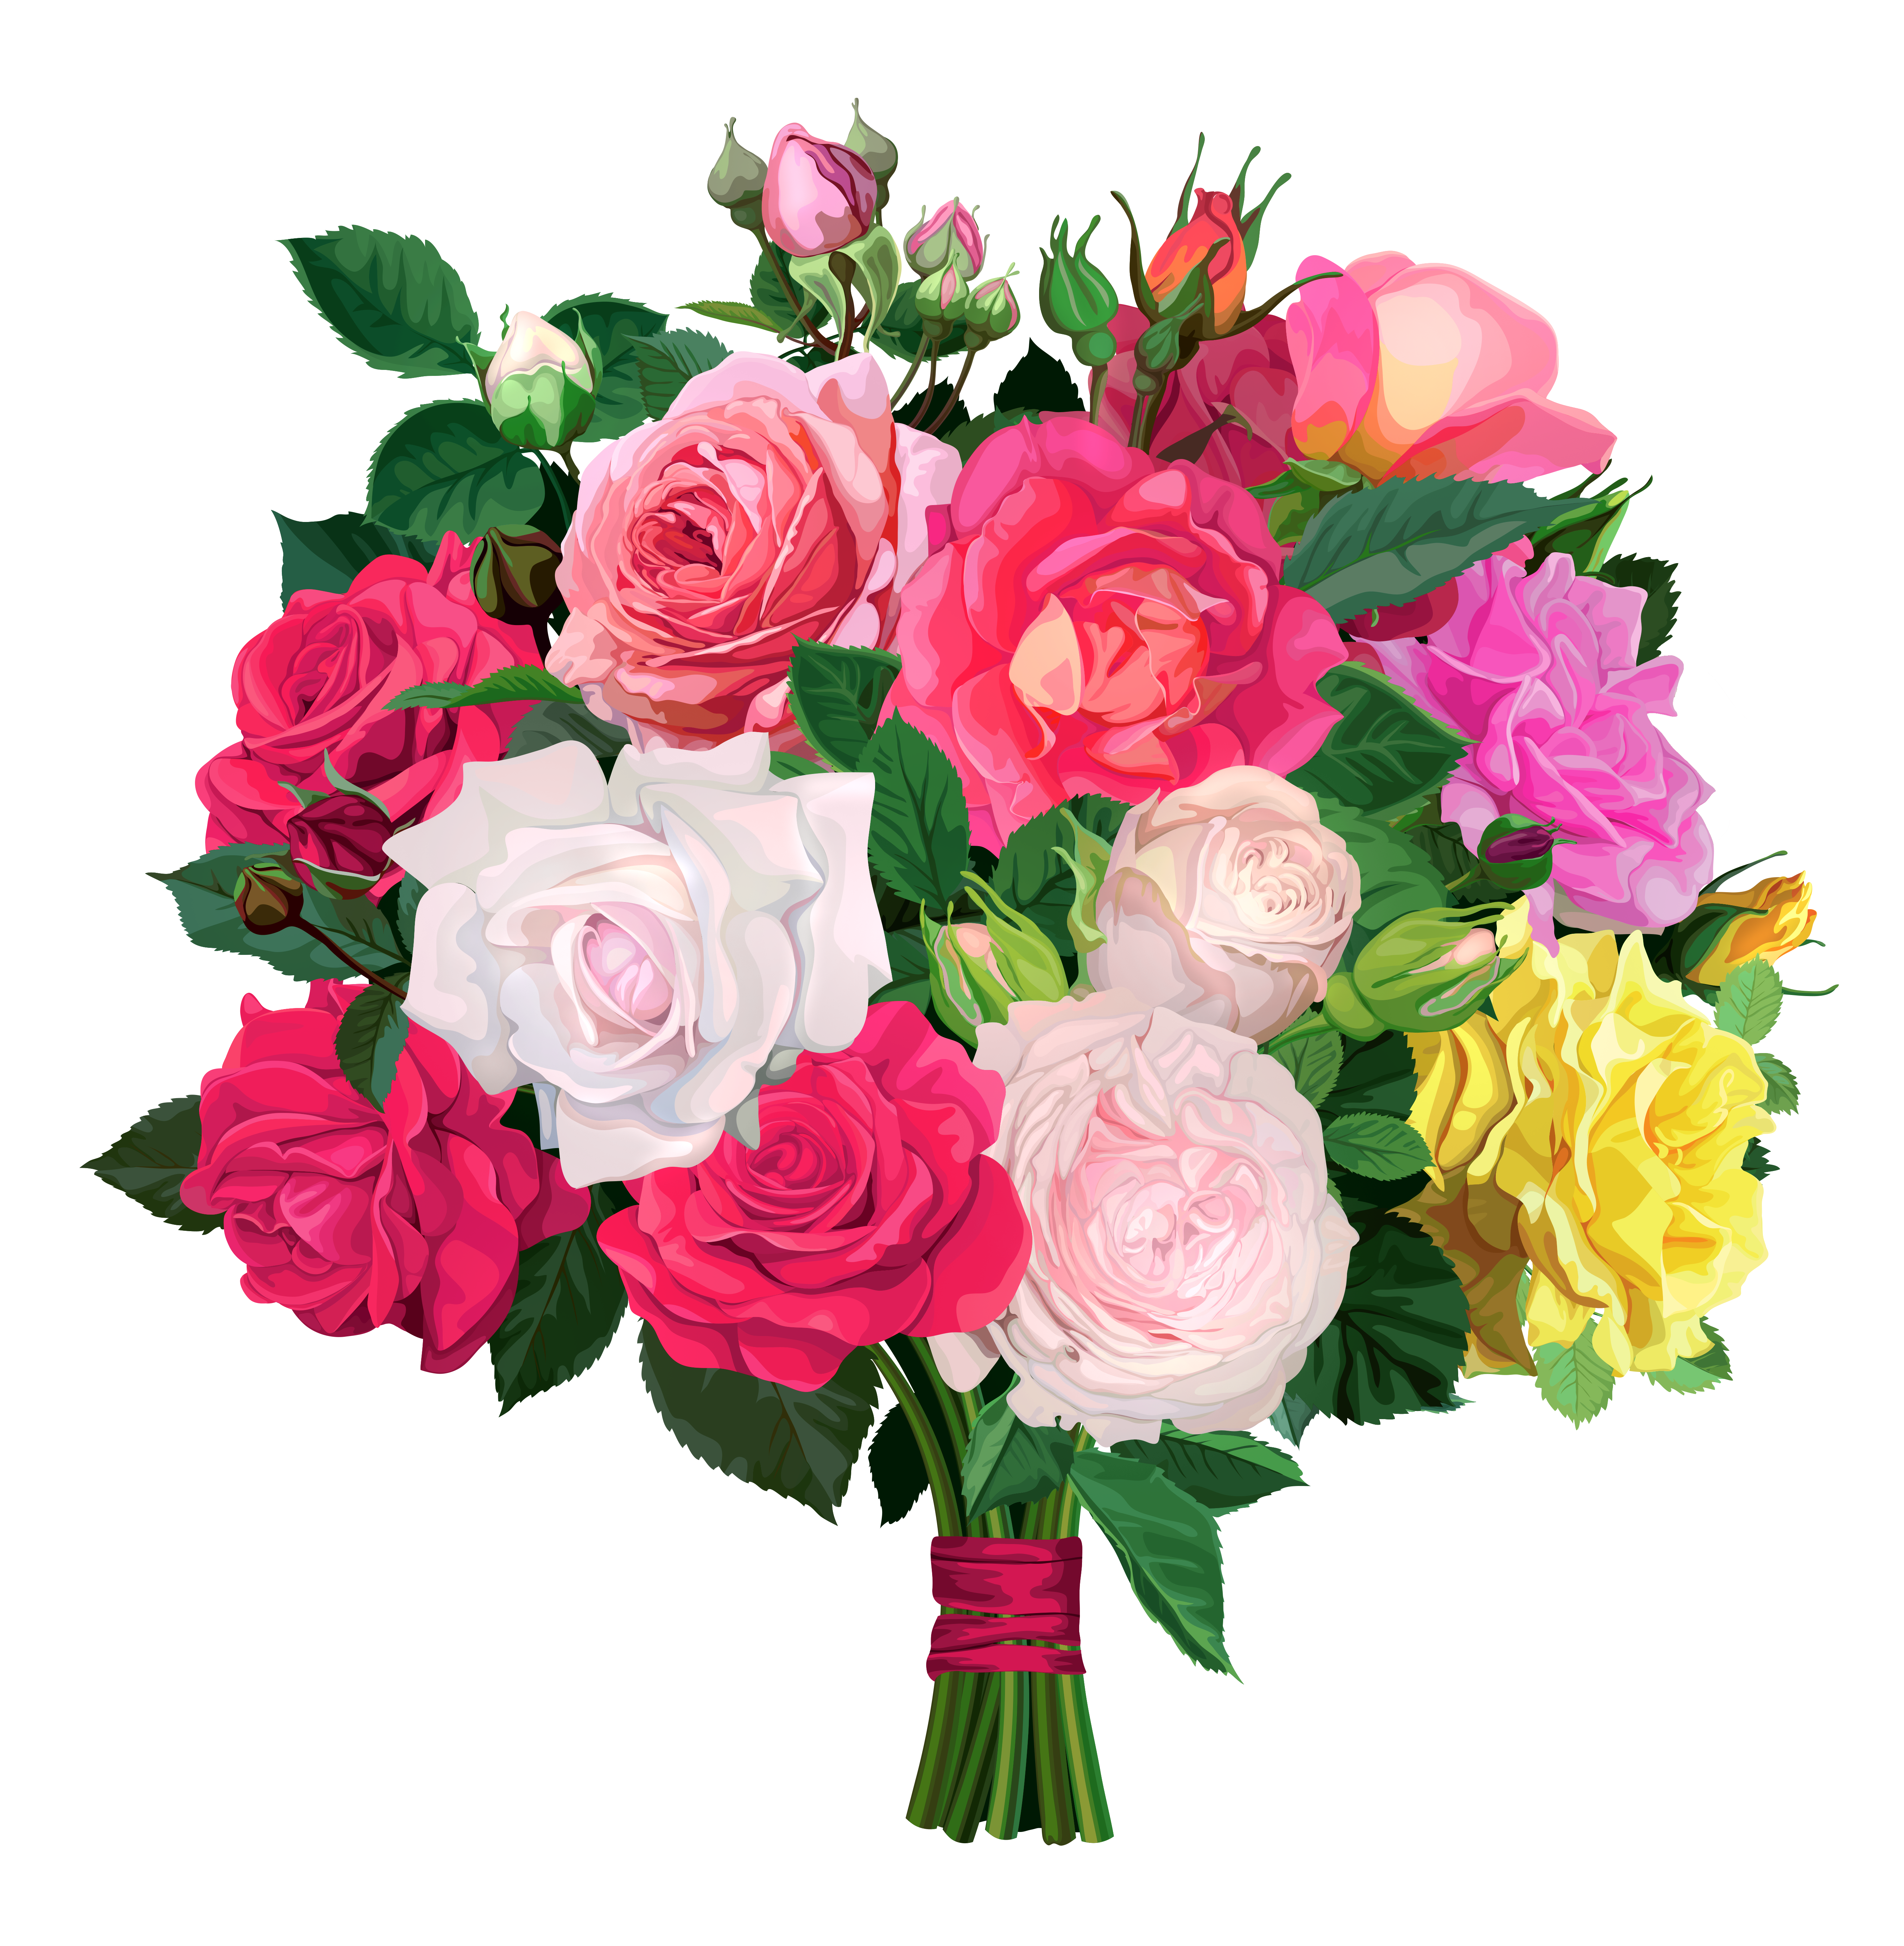 flower bouquet images bouquet cliparts wedding flowers #34086